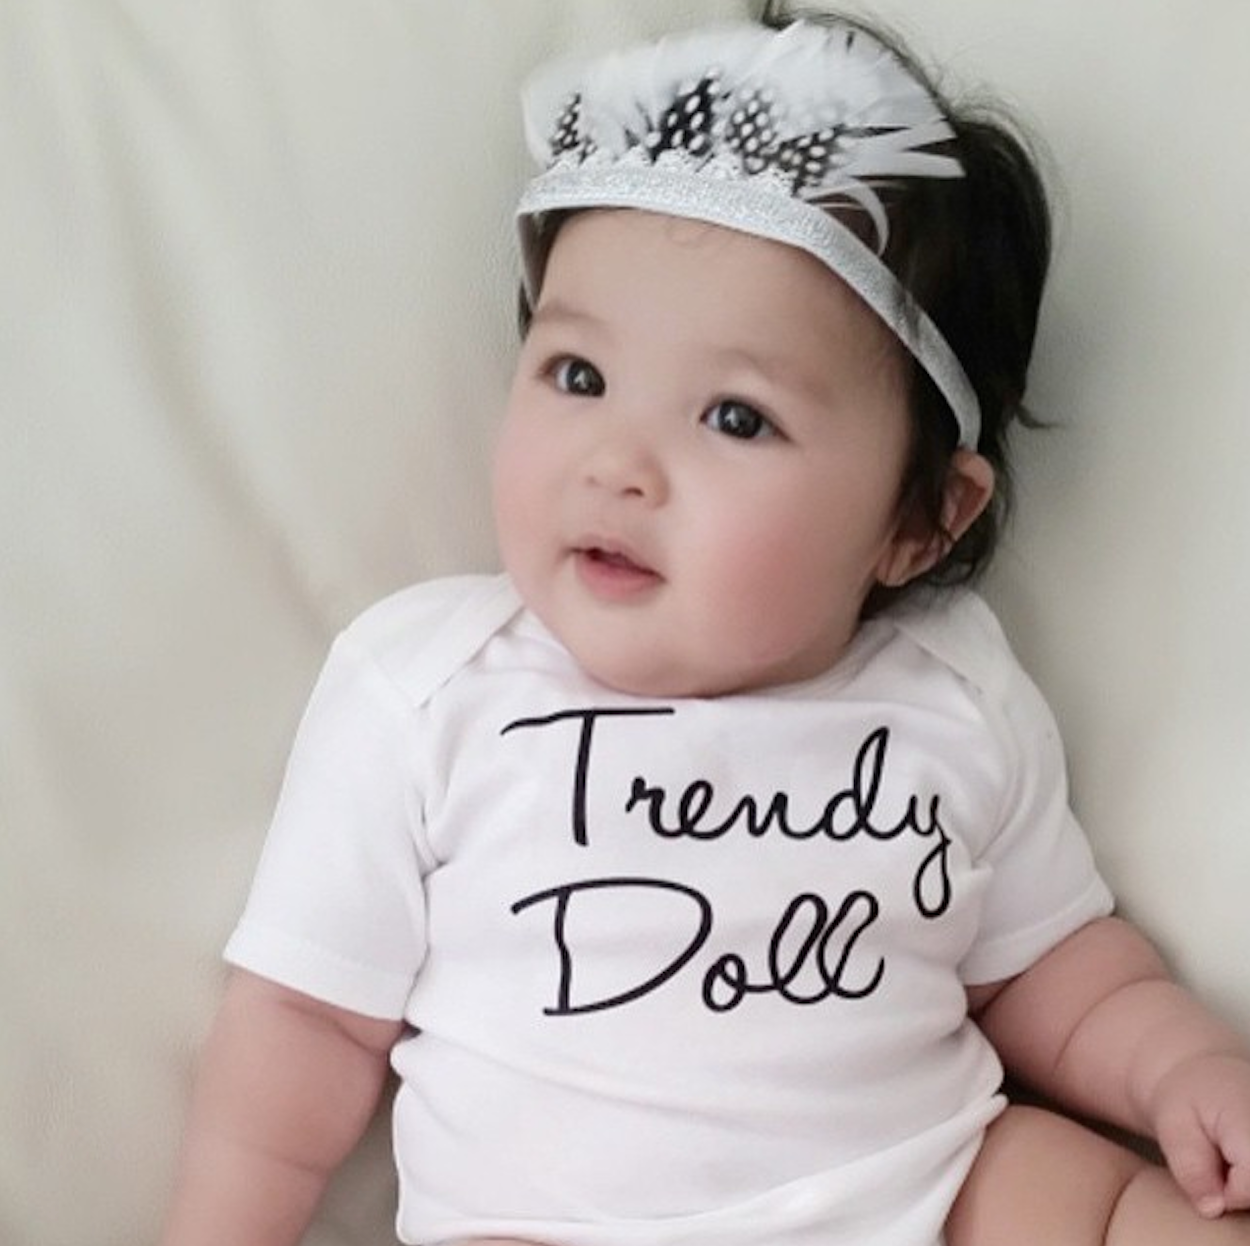 Trendy Doll design request by @__myahandmila